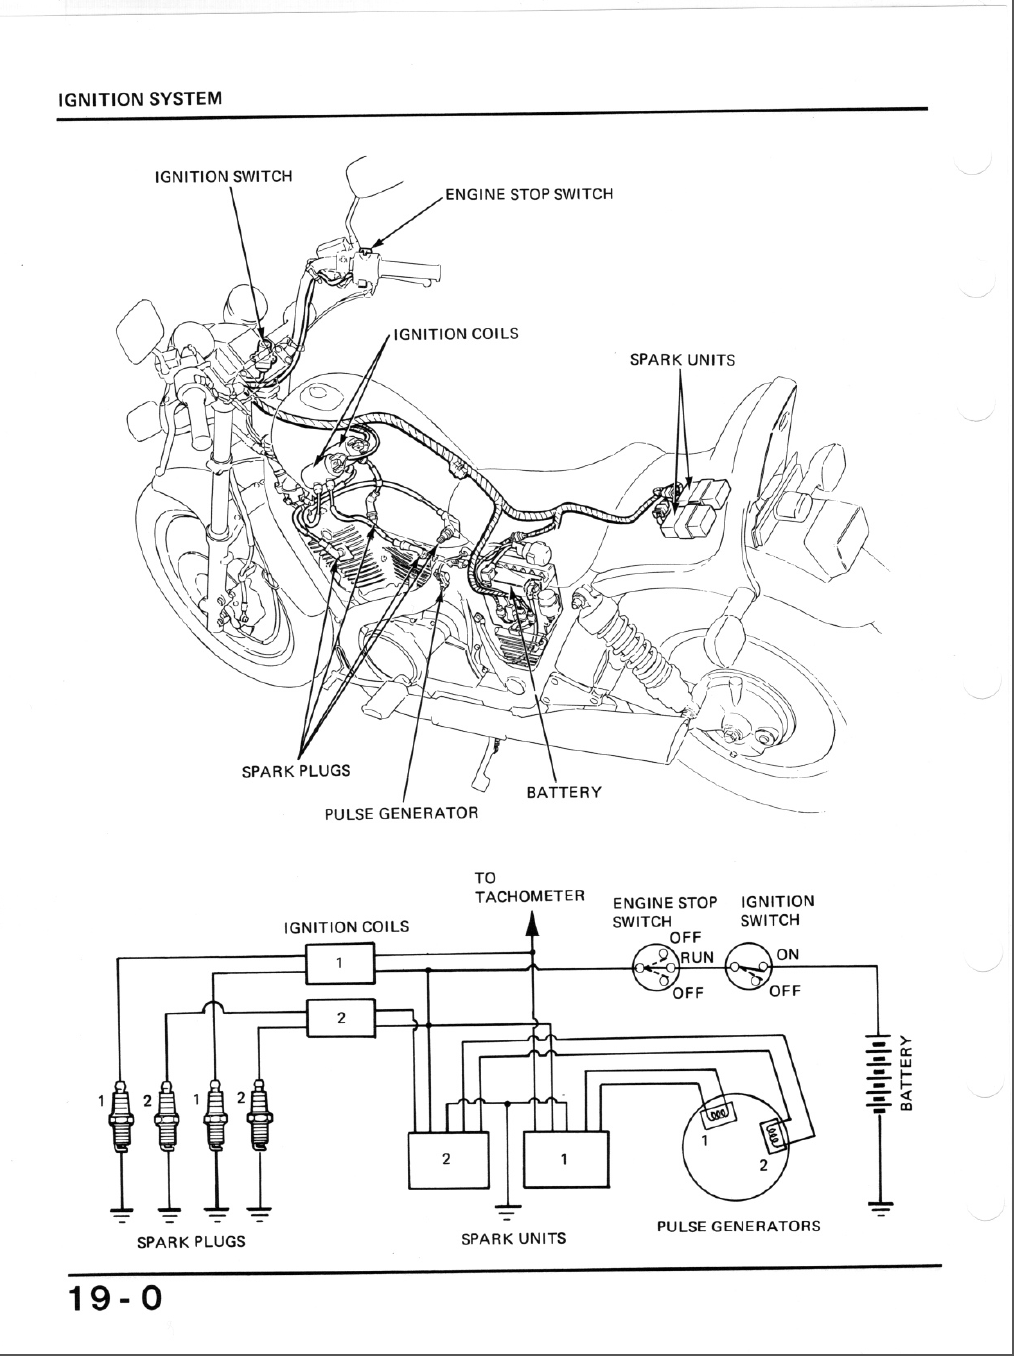 9267d1409799693 1984 honda shadow 700 ignition system 1996 honda shadow 1100 wiring system diagram wiring diagram data